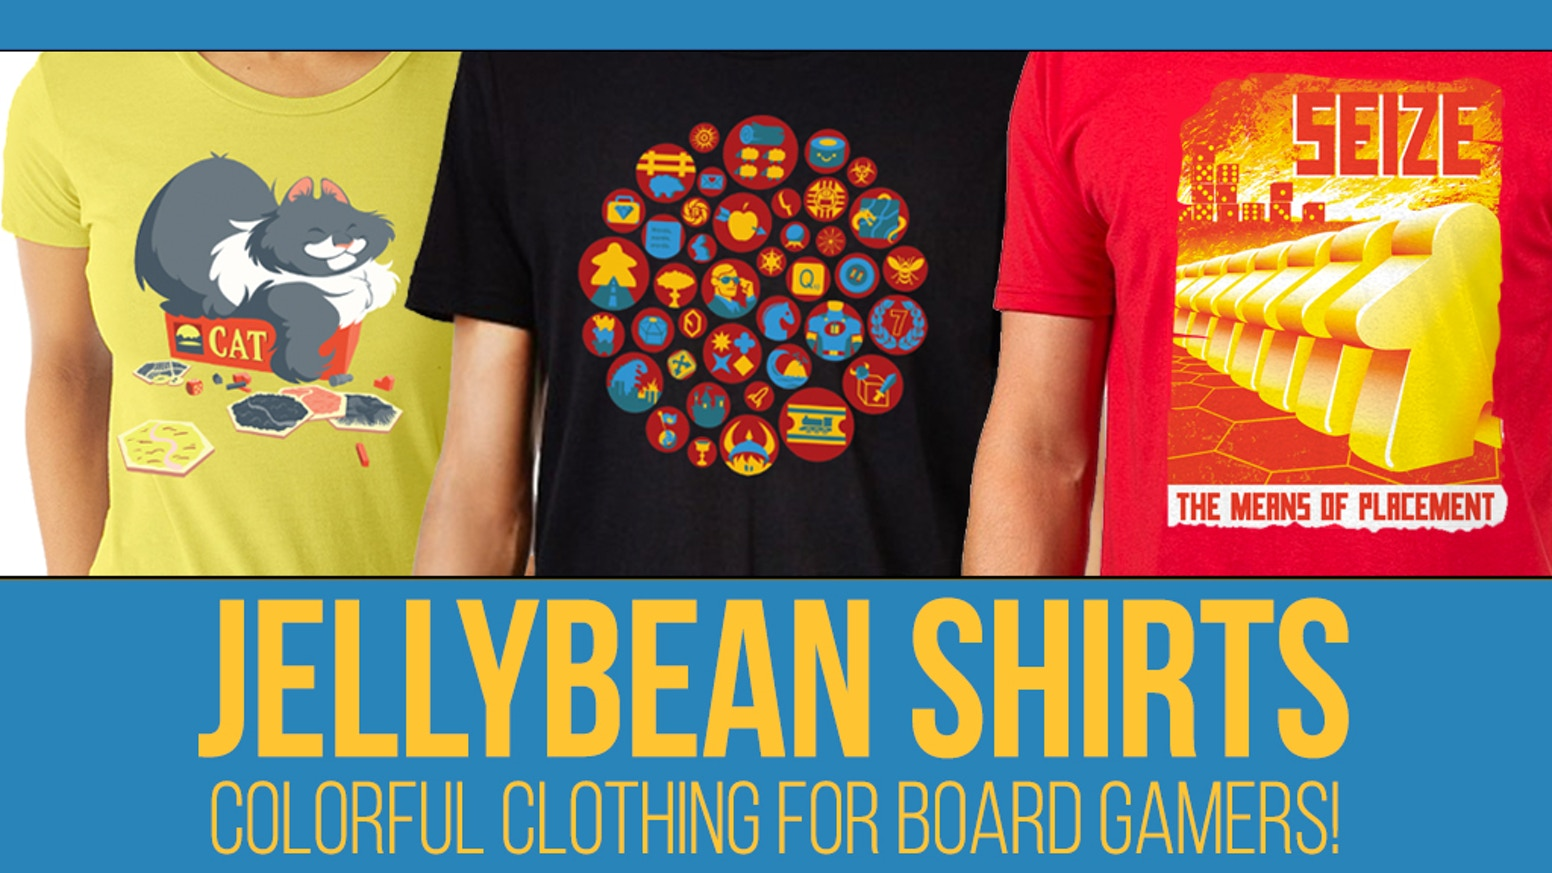 Show off your love of tabletop gaming with these high-quality shirts. Three stunning designs for gamers of all types. Available for pre-order for a limited time only!